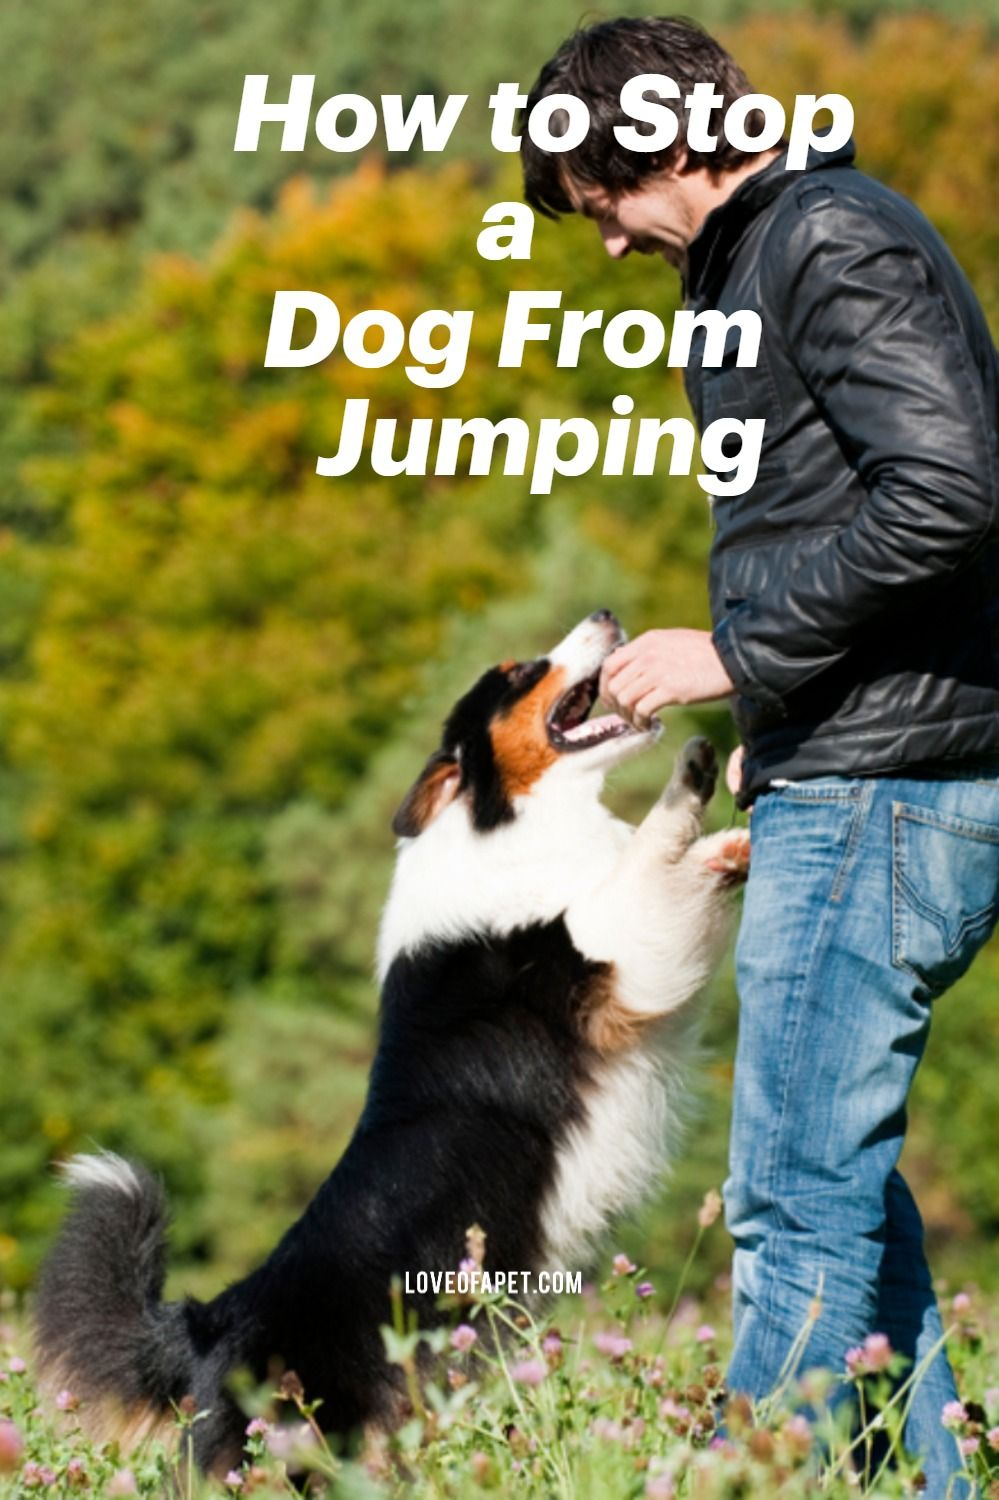 Basic guidance on how to stop a dog from jumping in 2020